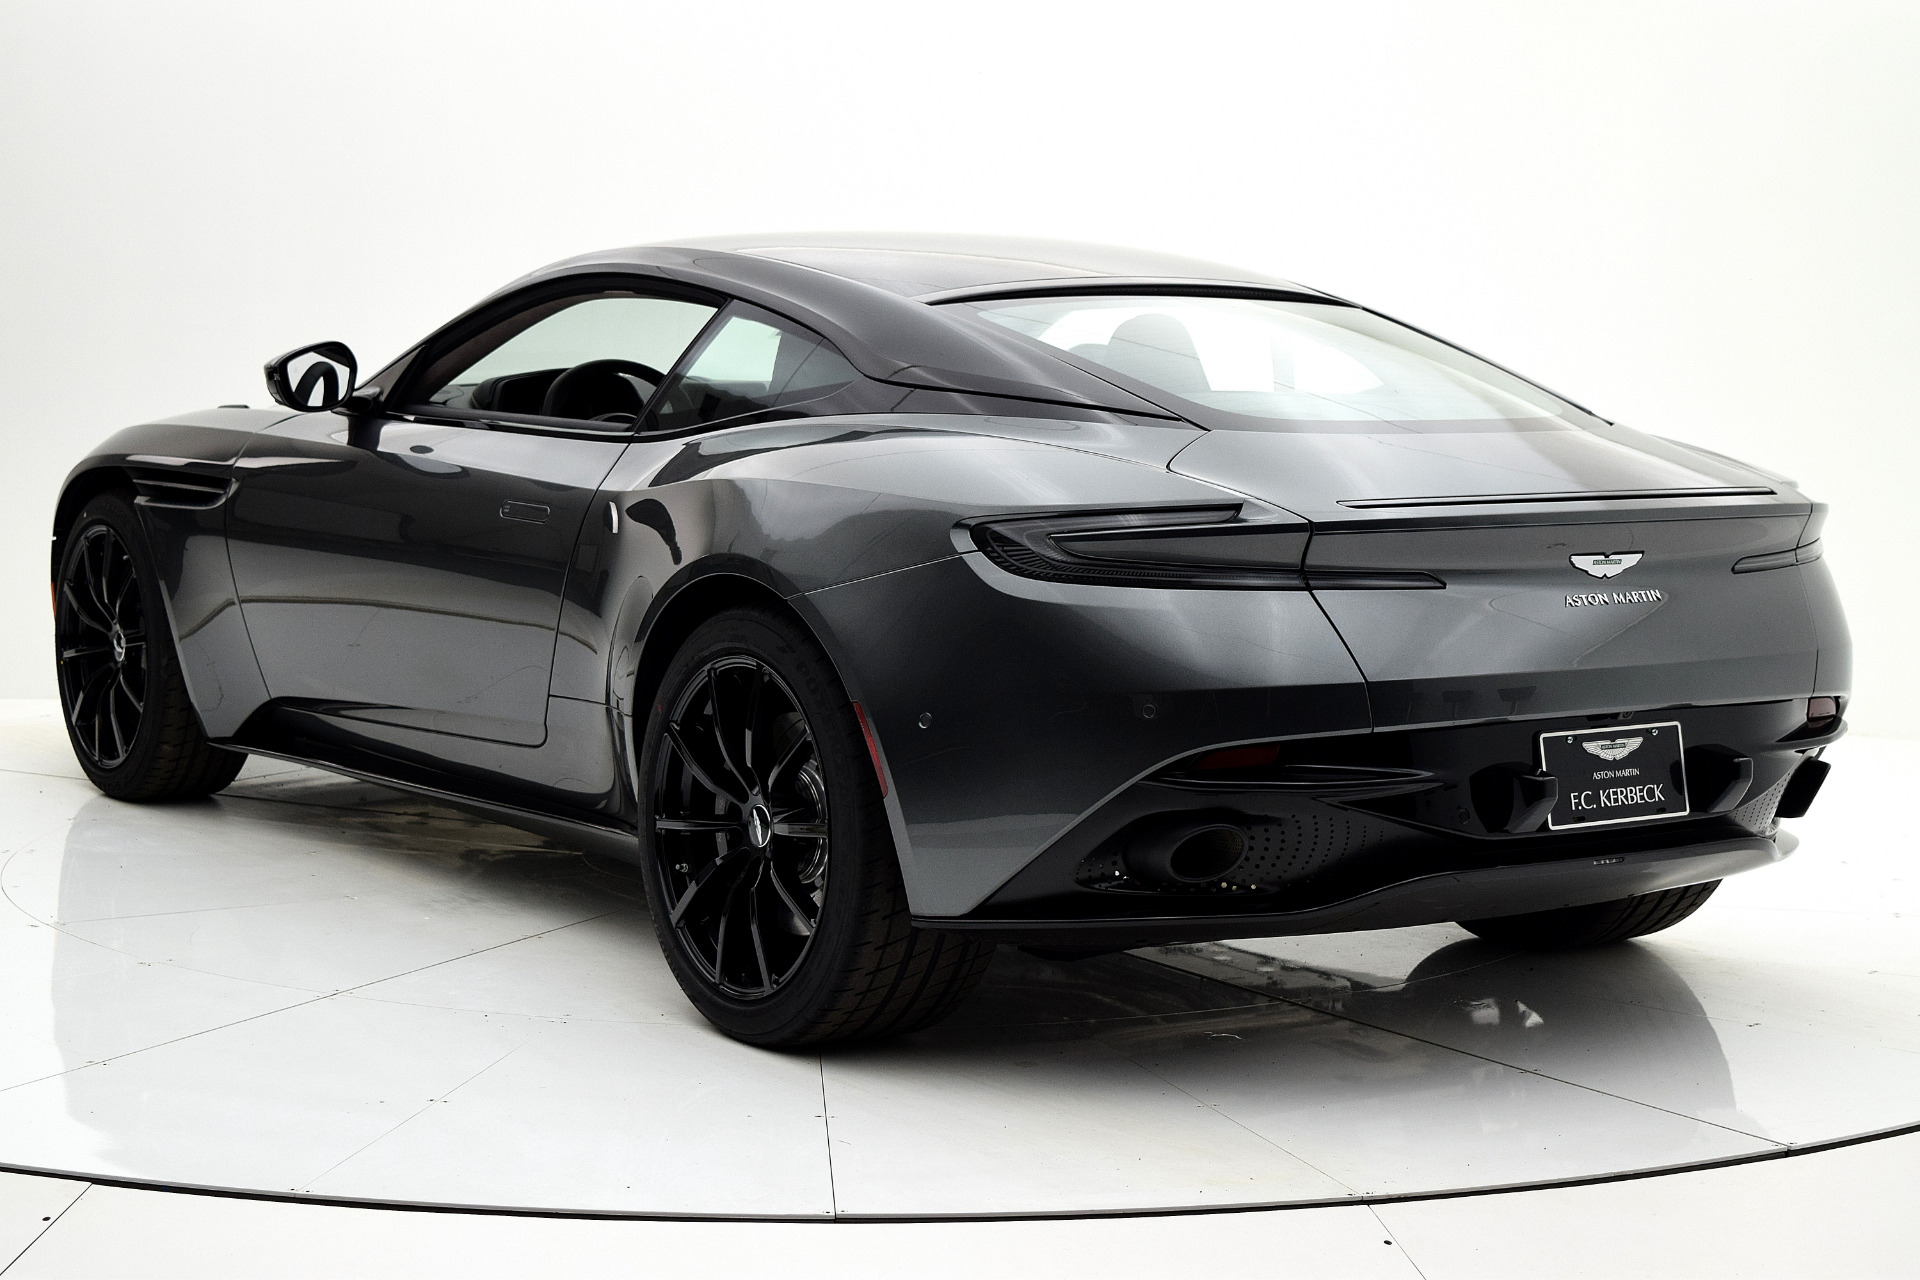 New 2020 Aston Martin Db11 Amr Coupe For Sale 258 366 F C Kerbeck Aston Martin Stock 20a100